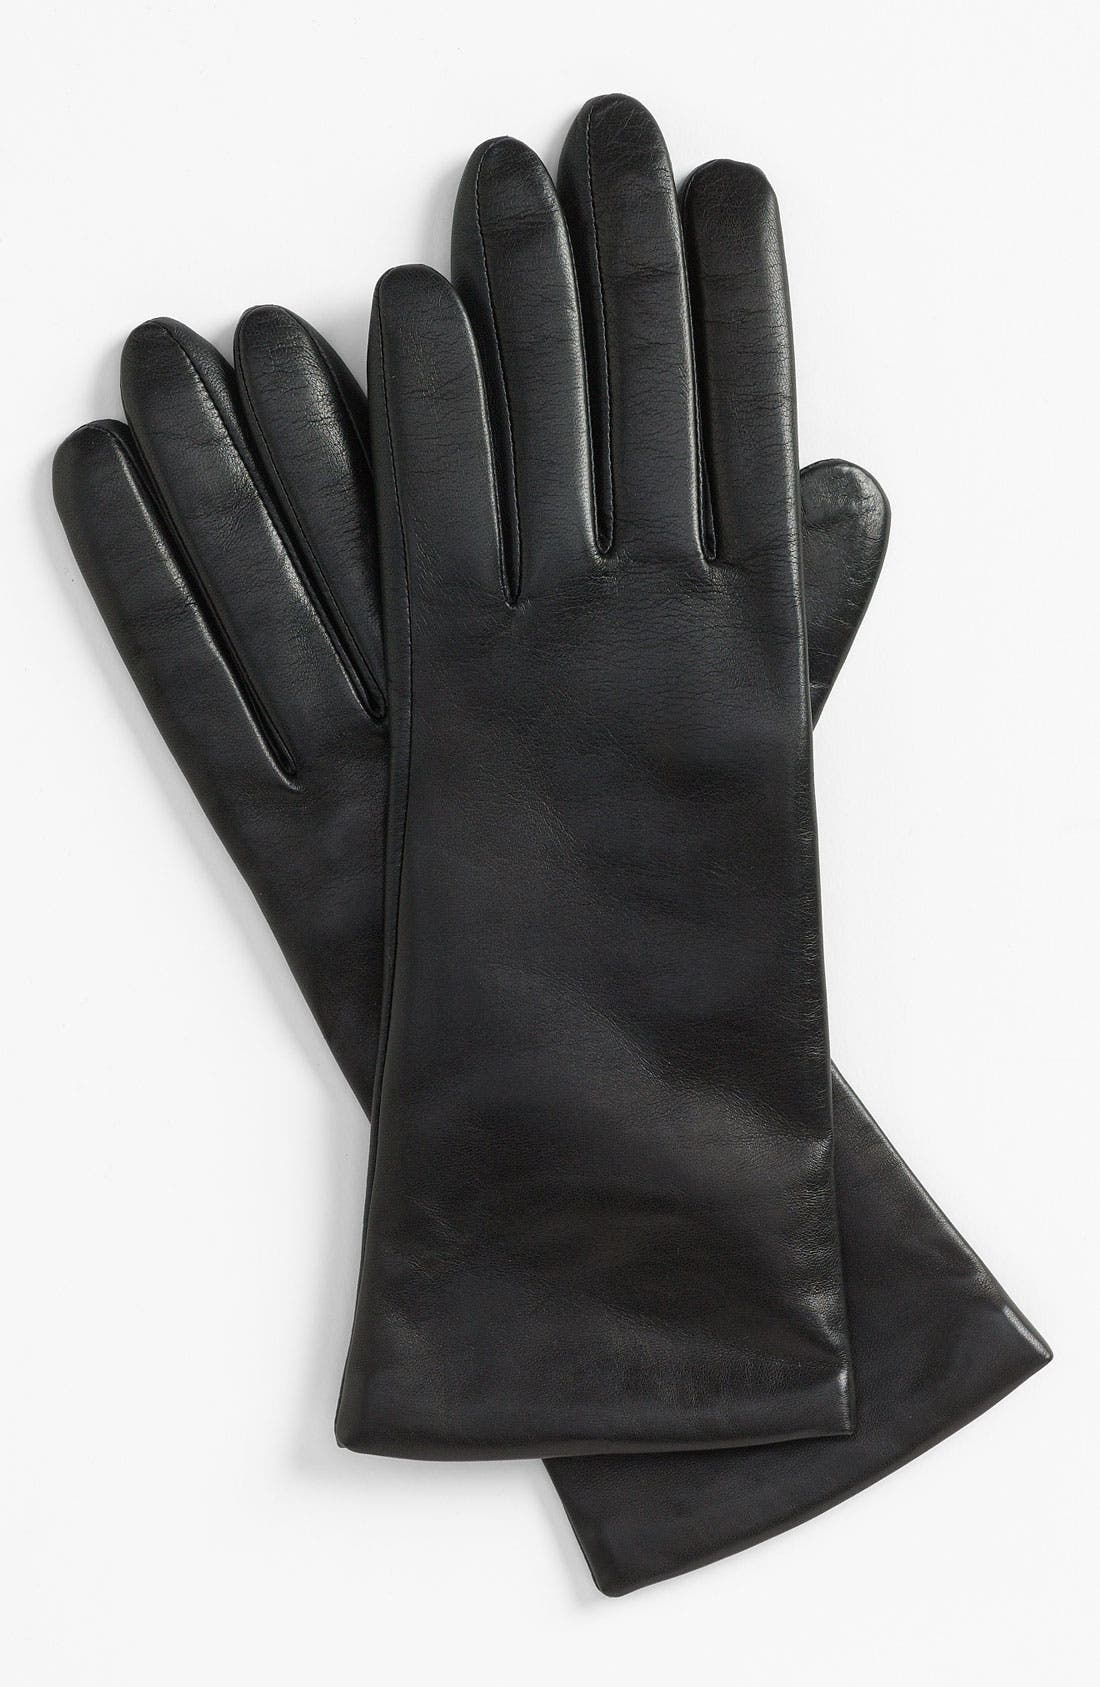 Alternate Image 1 Selected - Fownes Brothers 'Basic Tech' Cashmere Lined Leather Gloves (Nordstrom Exclusive)